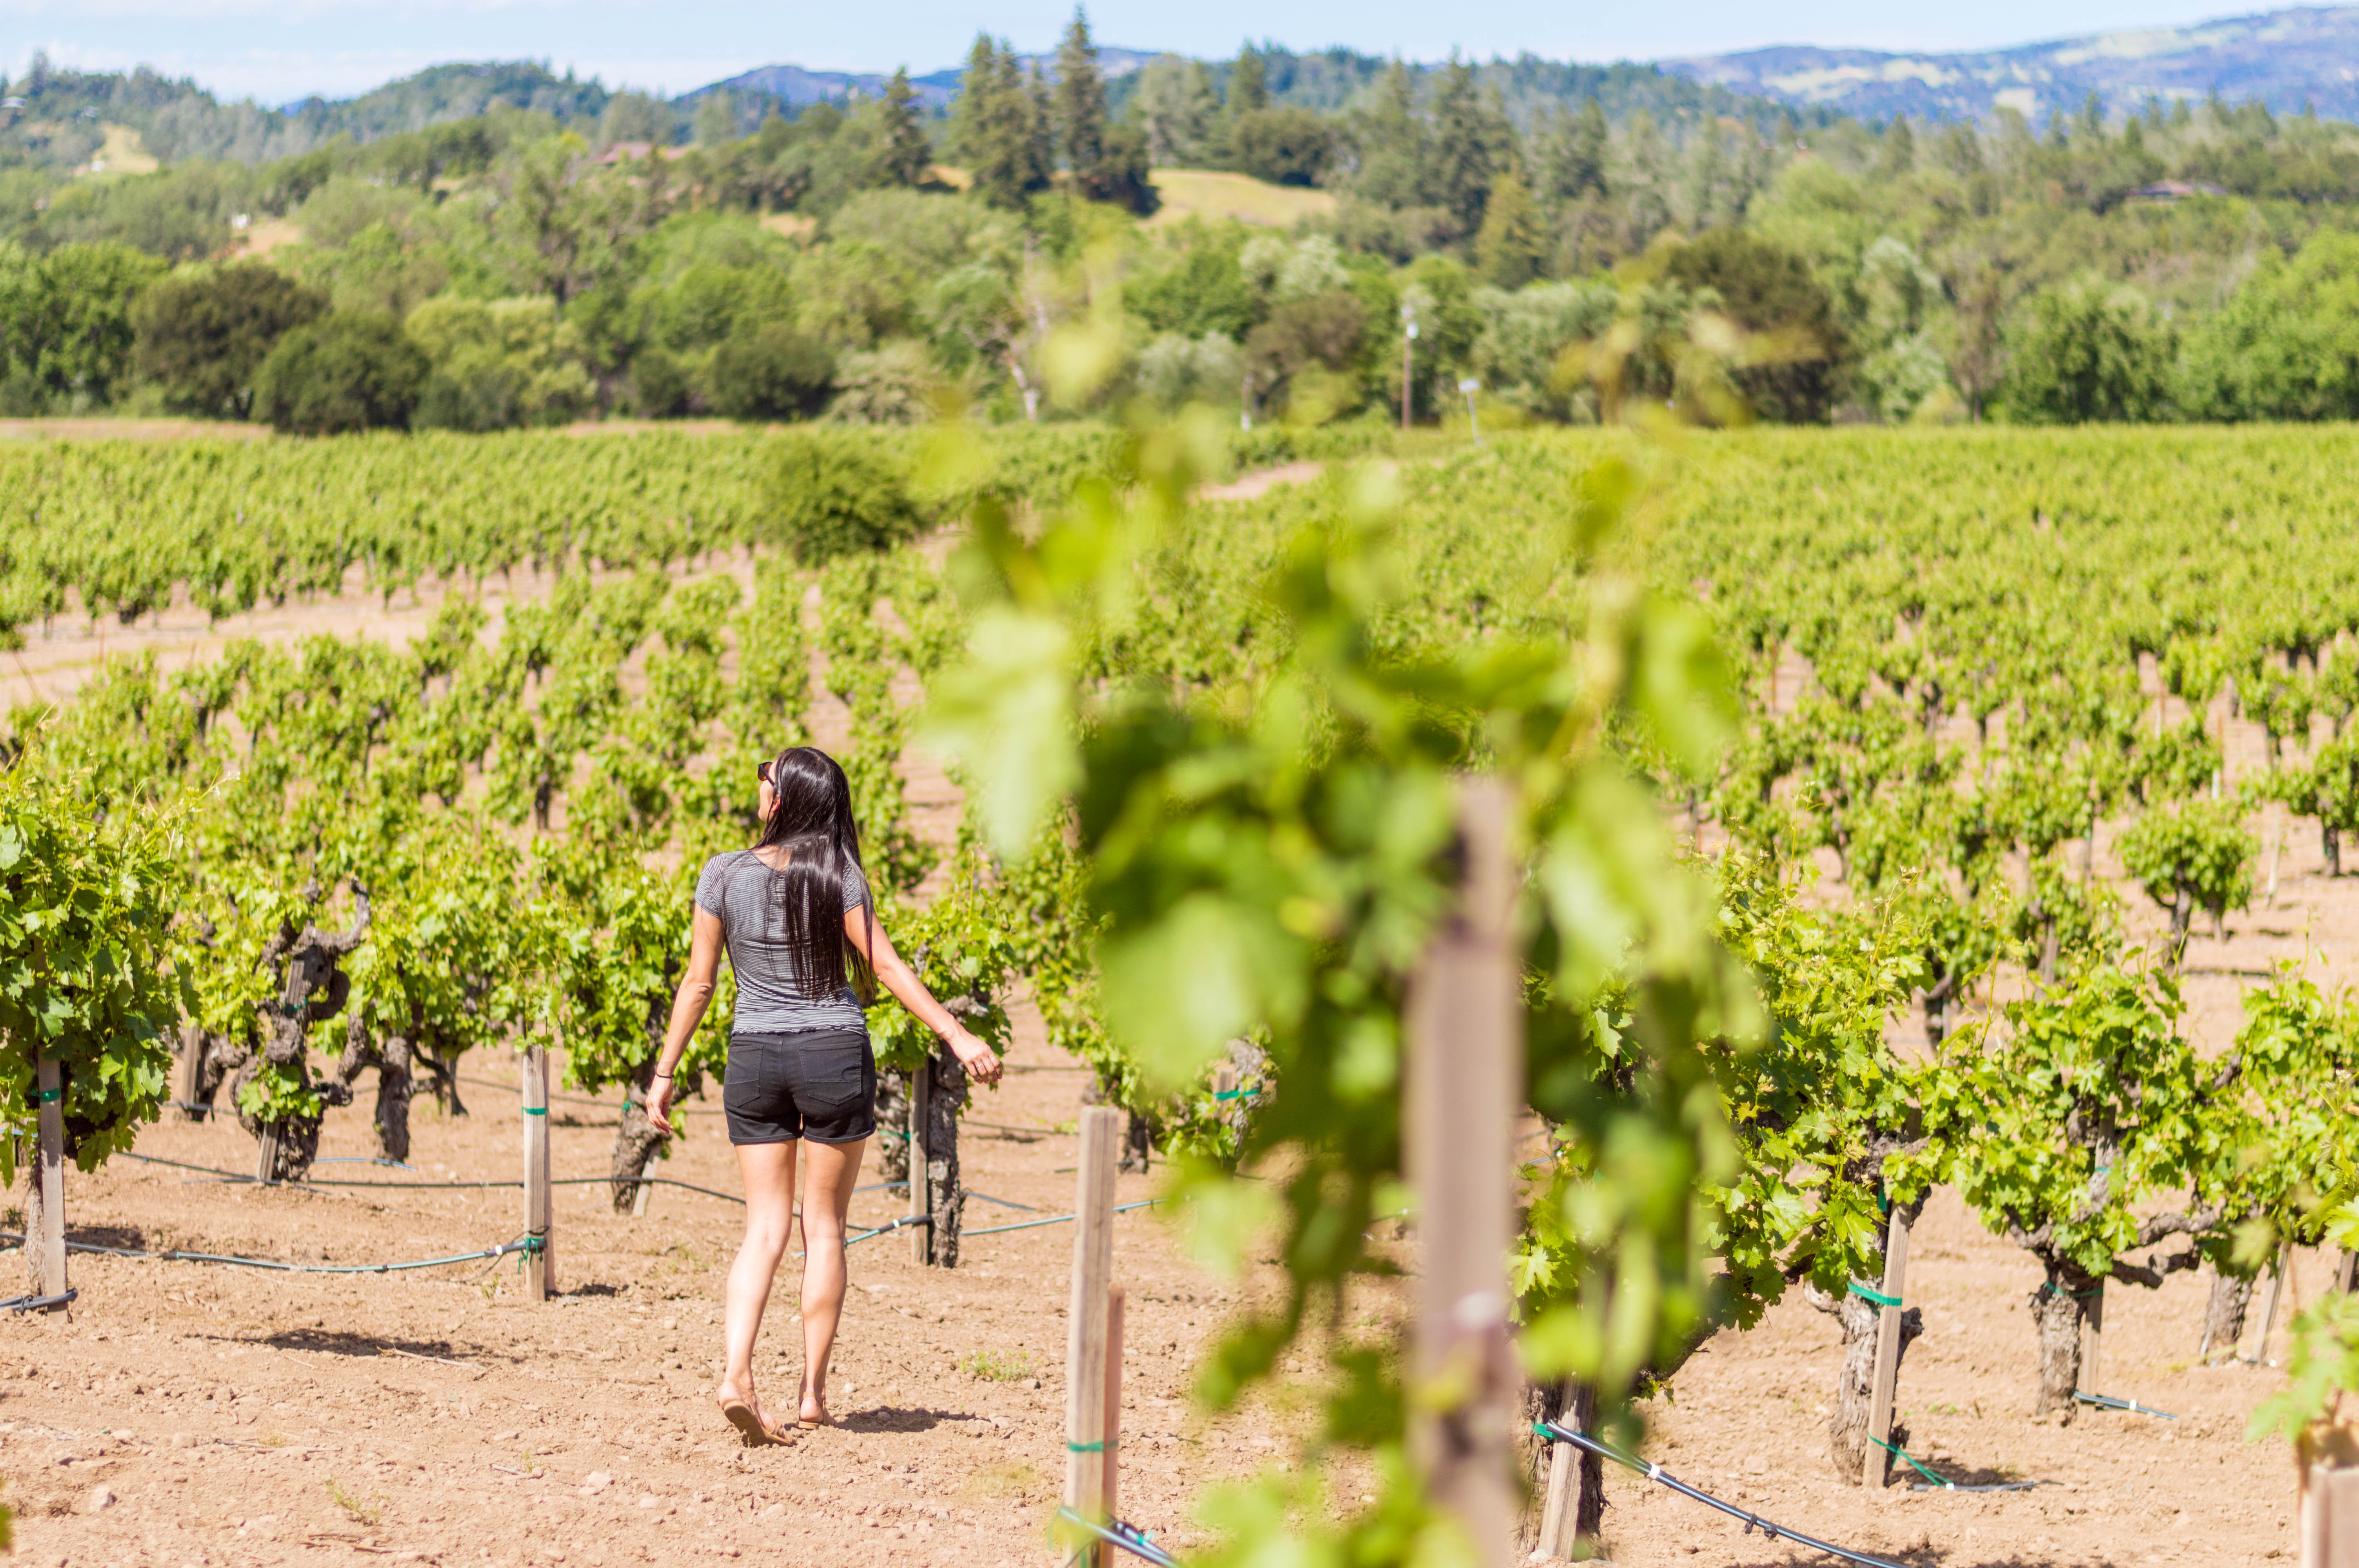 A walk through the vineyards at Zichichi in Dry Creek Valley, Sonoma County, California